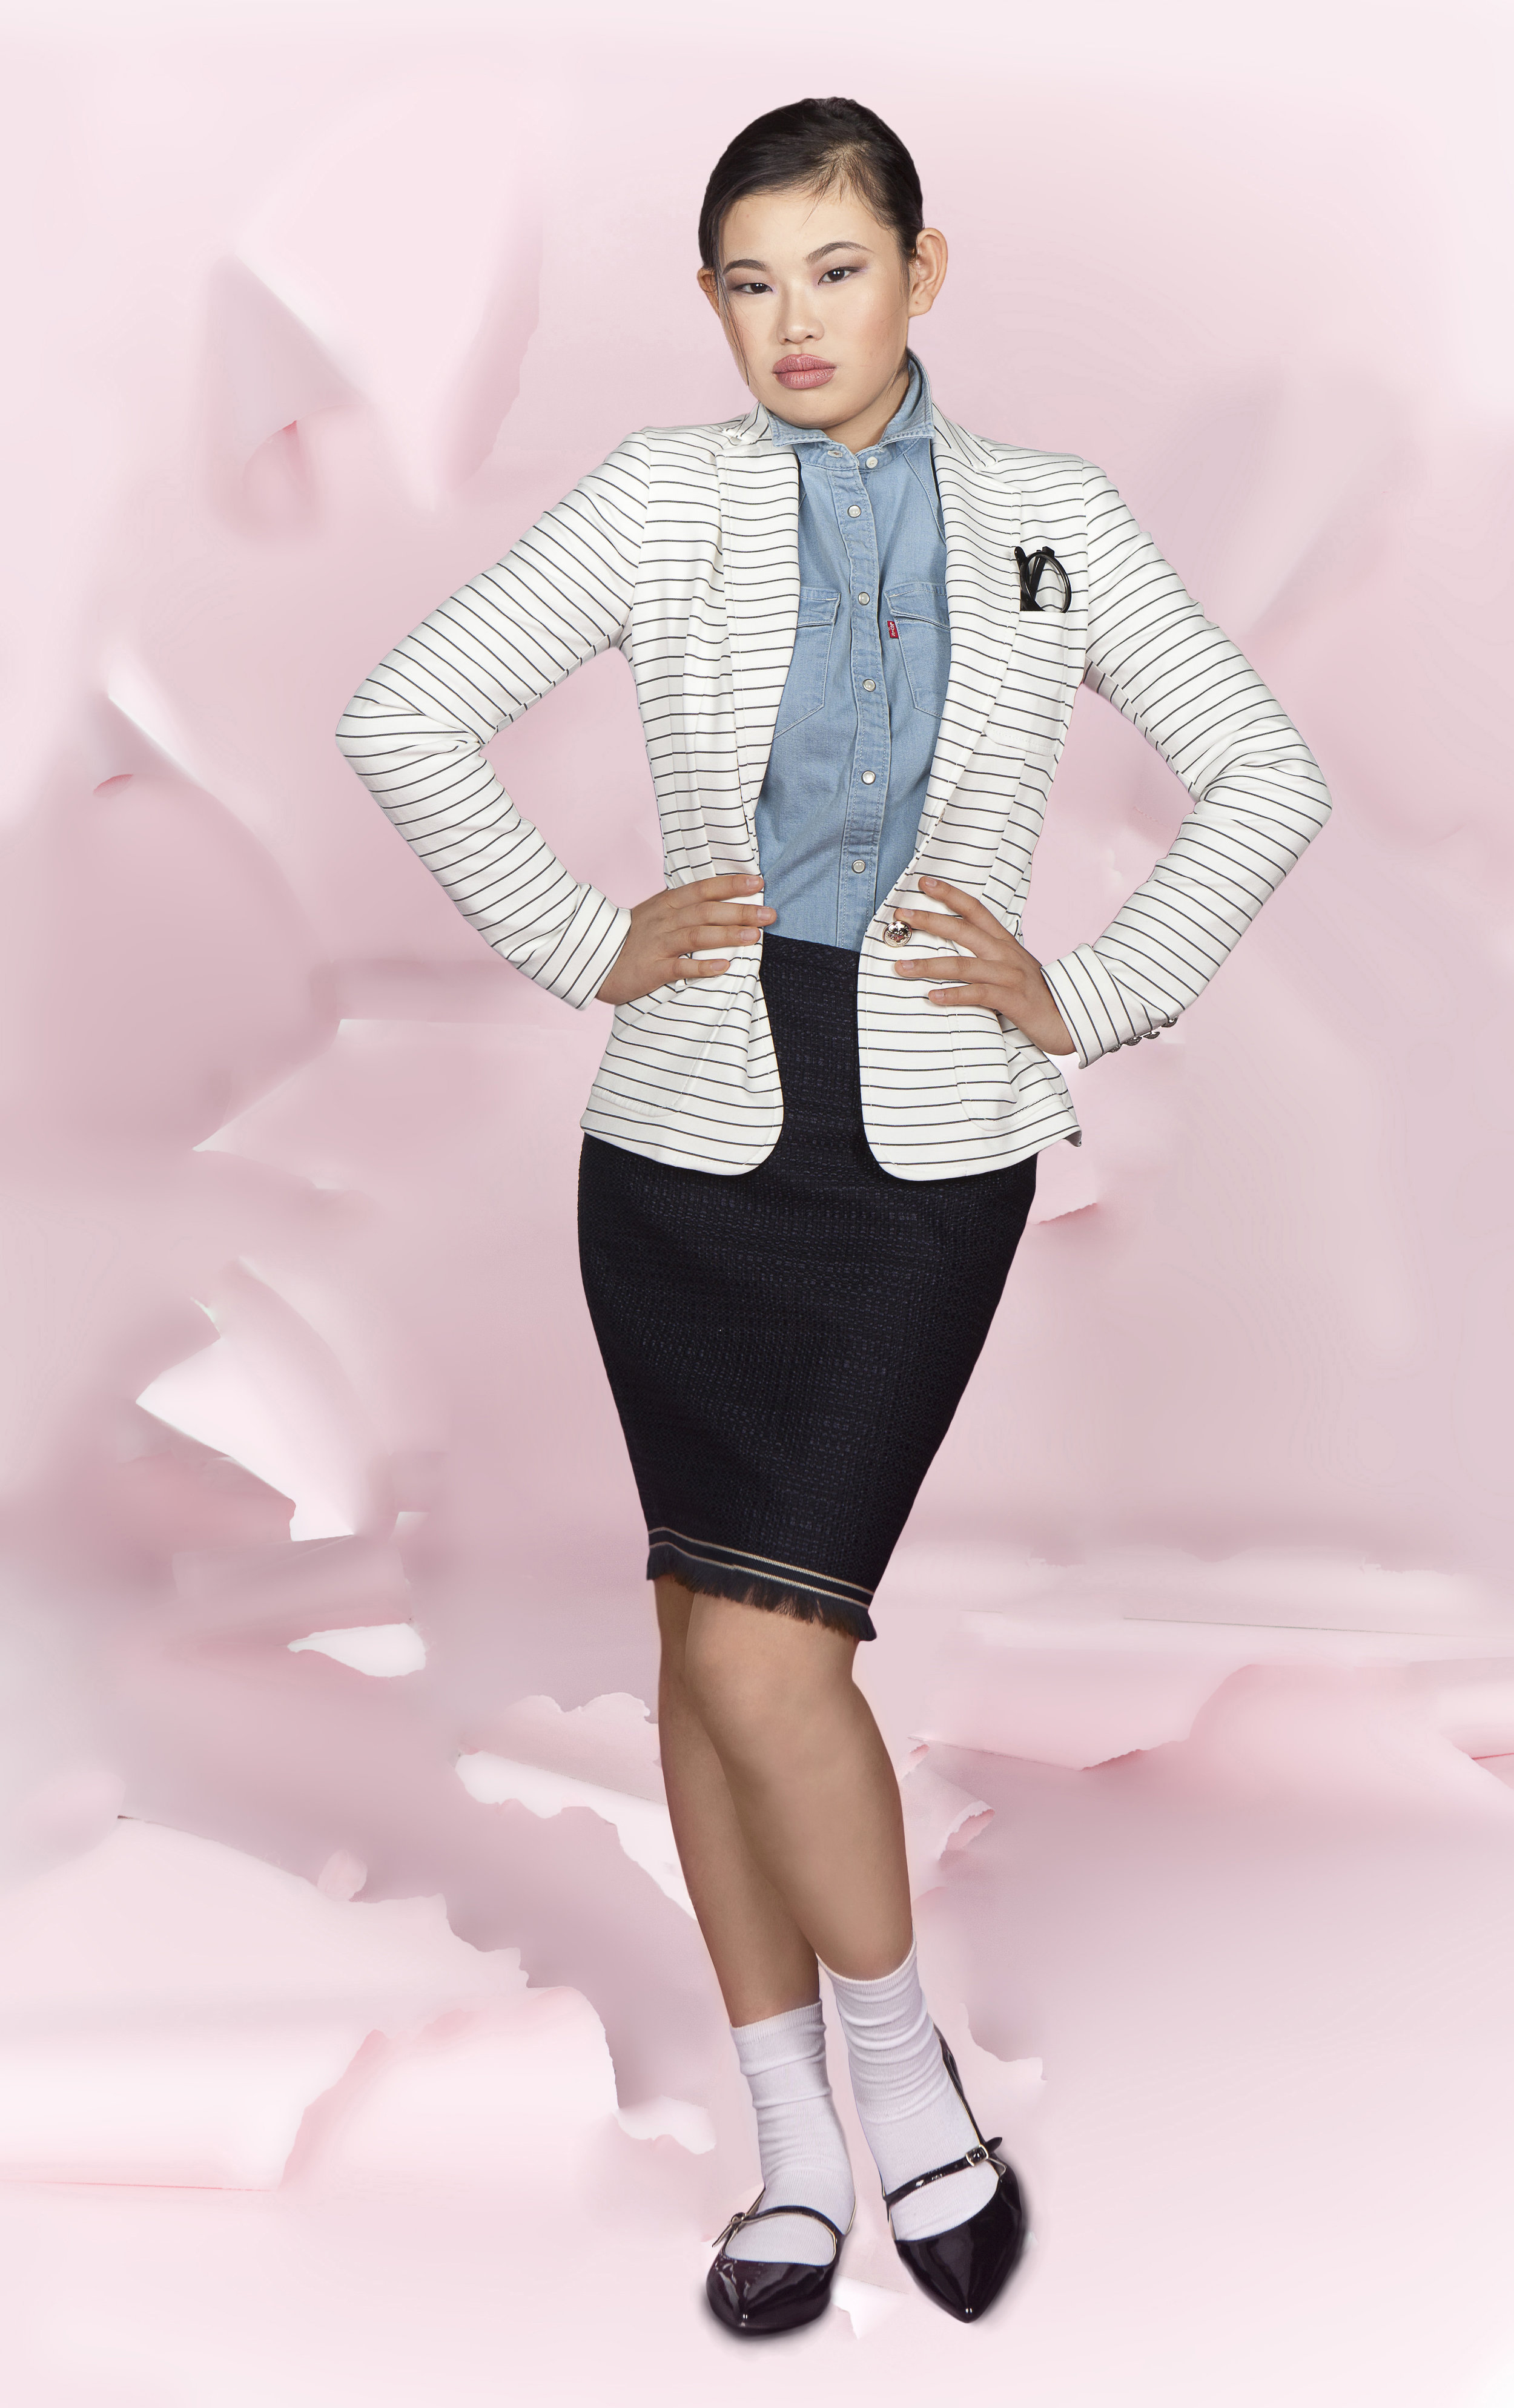 BUSINESS, BUT OUT OF THE BOX   blazer : Tommy Hilfiger |  skirt : Tommy Hilfiger | shoe : Adrienne Vittadini